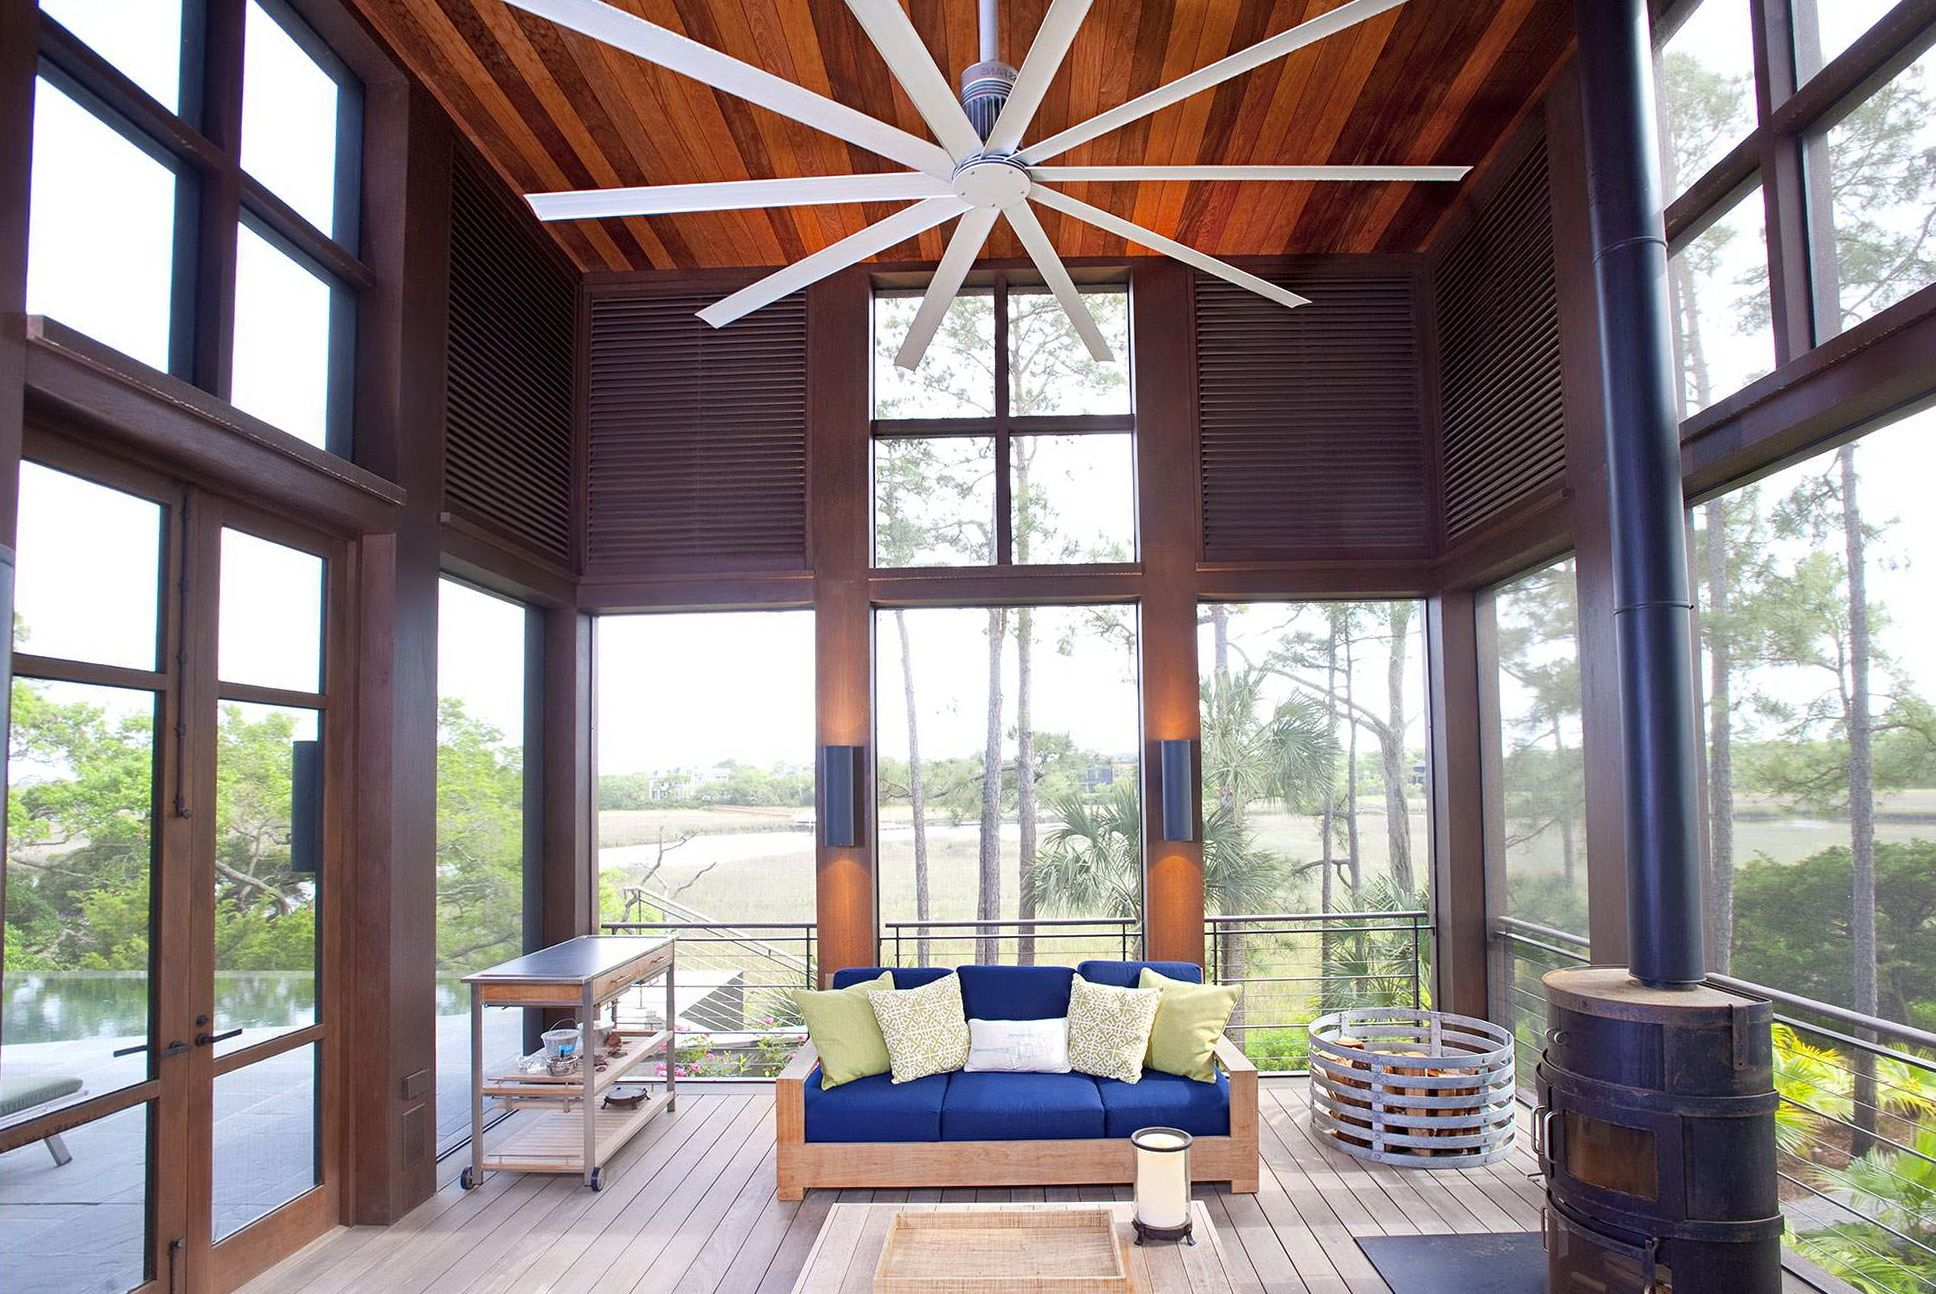 Large Ceiling Fans For High Ceilings